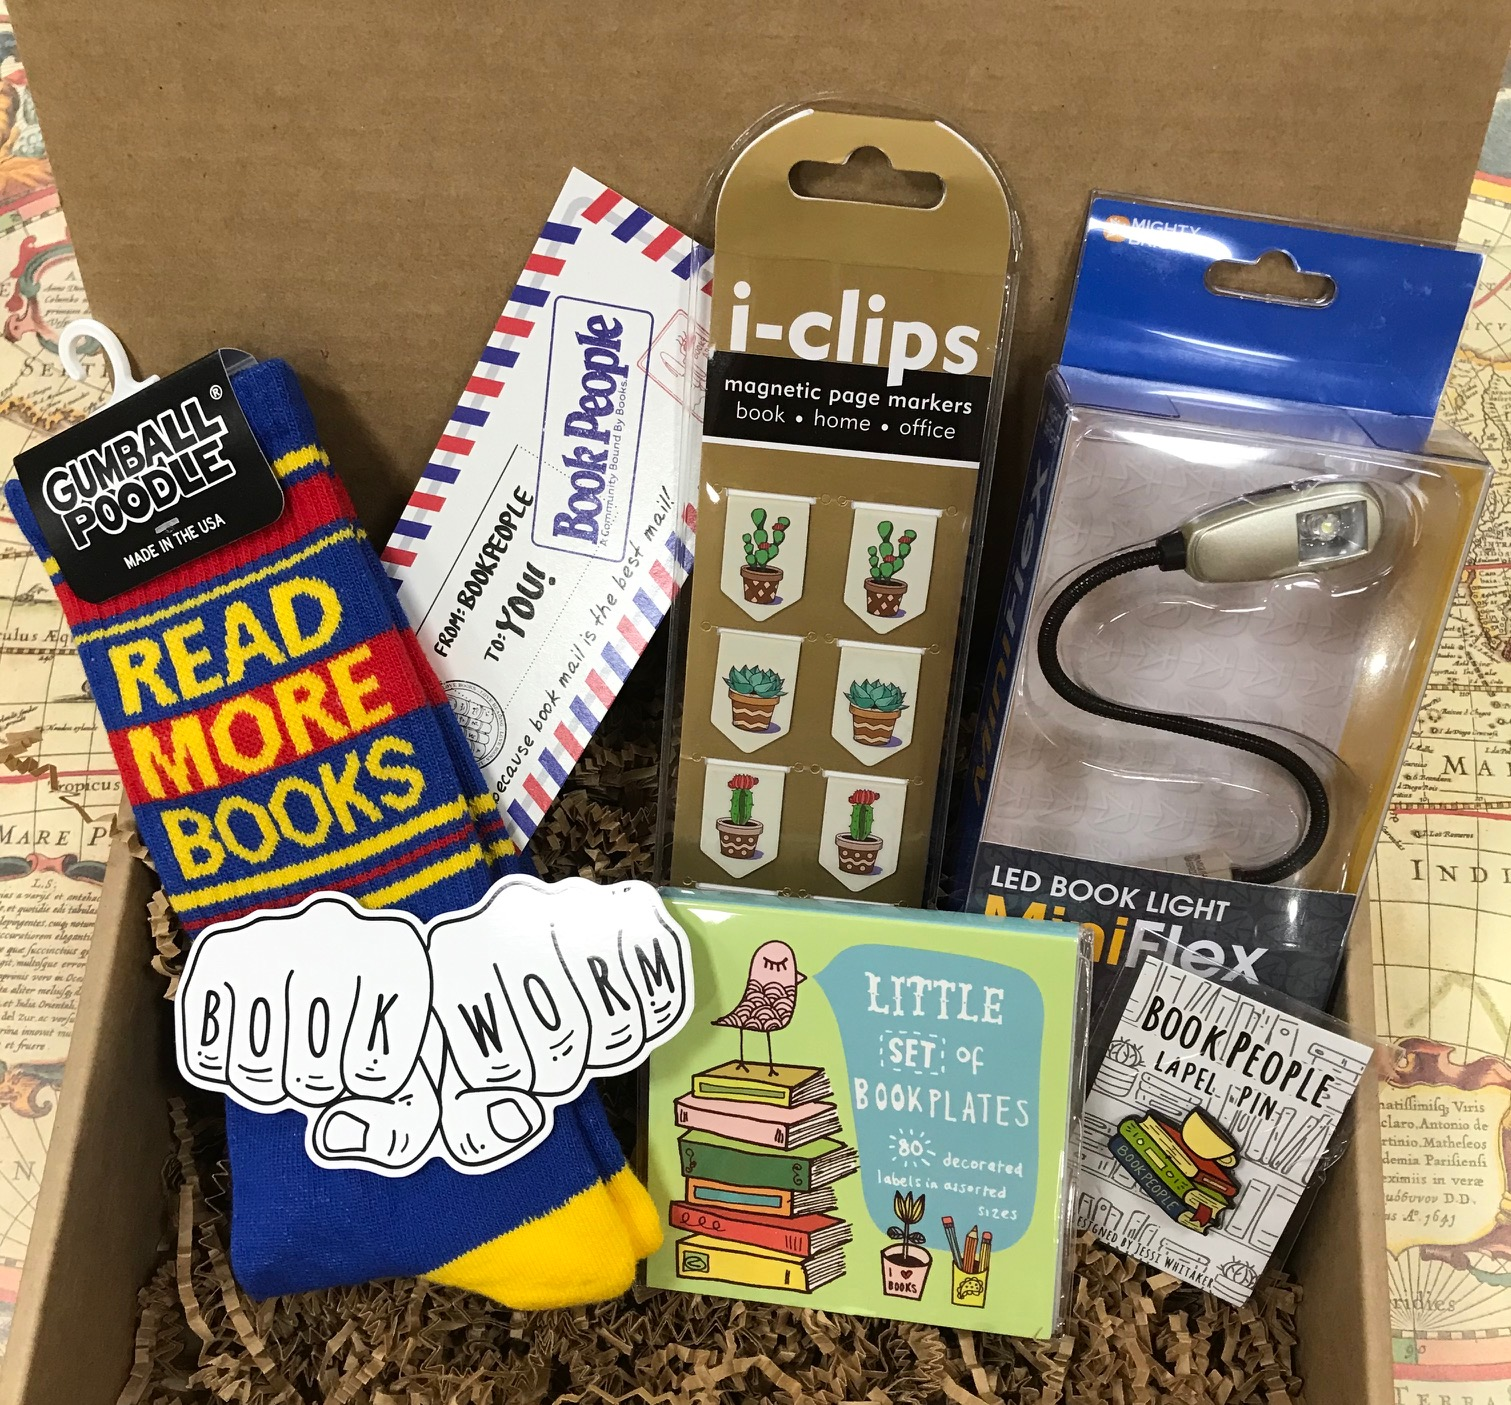 Example of a Book Worm Bundle